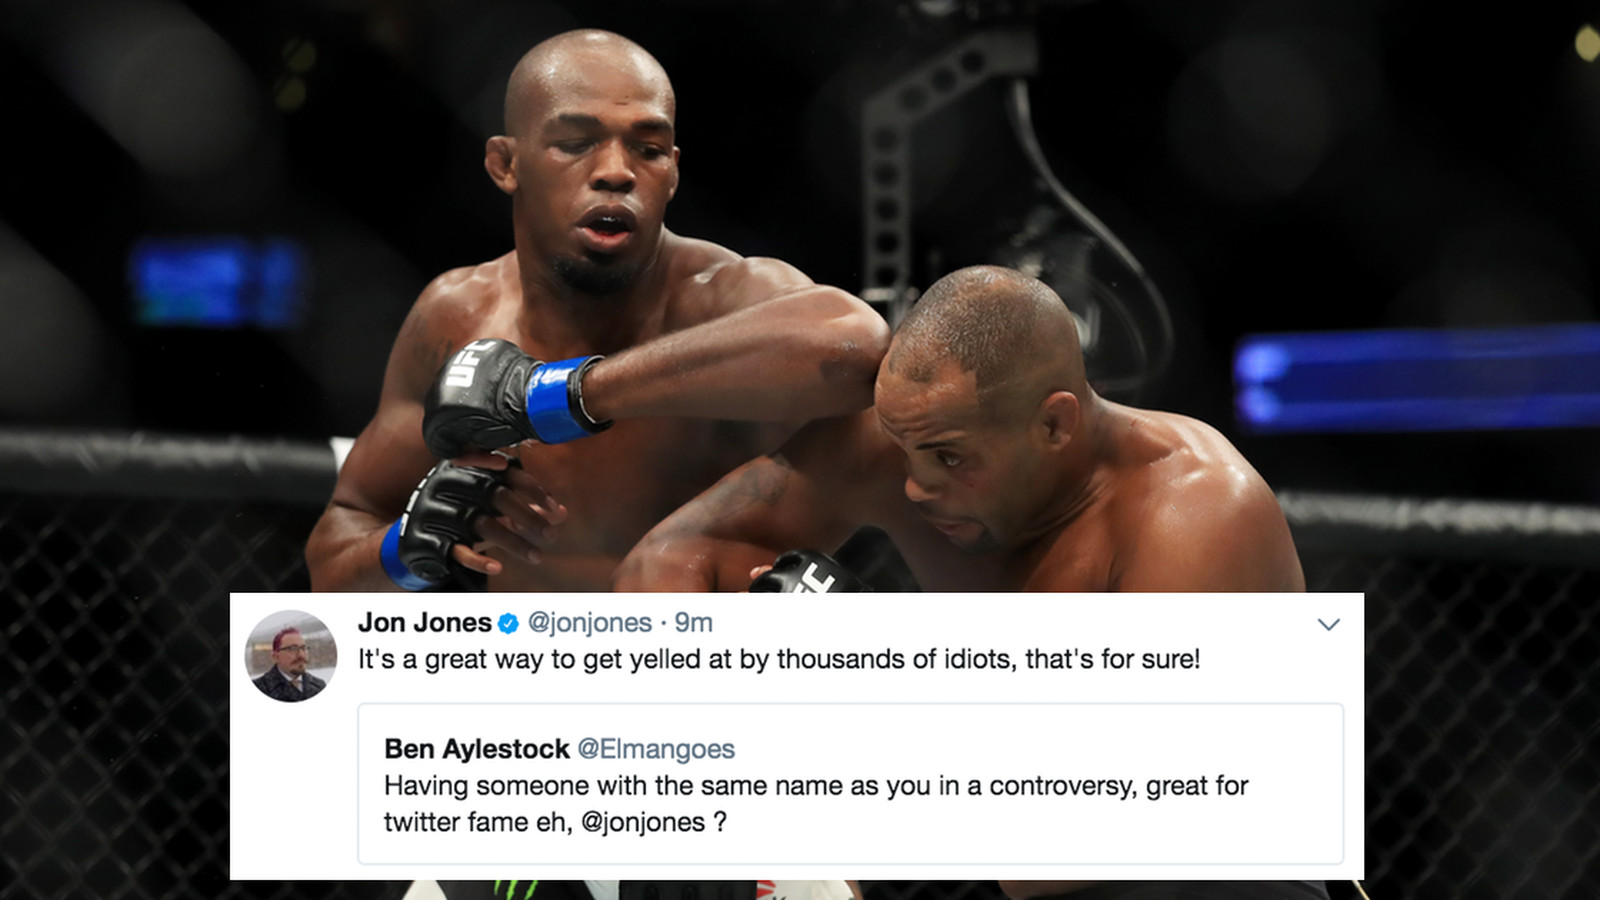 UFC fans are tagging the wrong Jon Jones on Twitter and this dude is LOVING IT